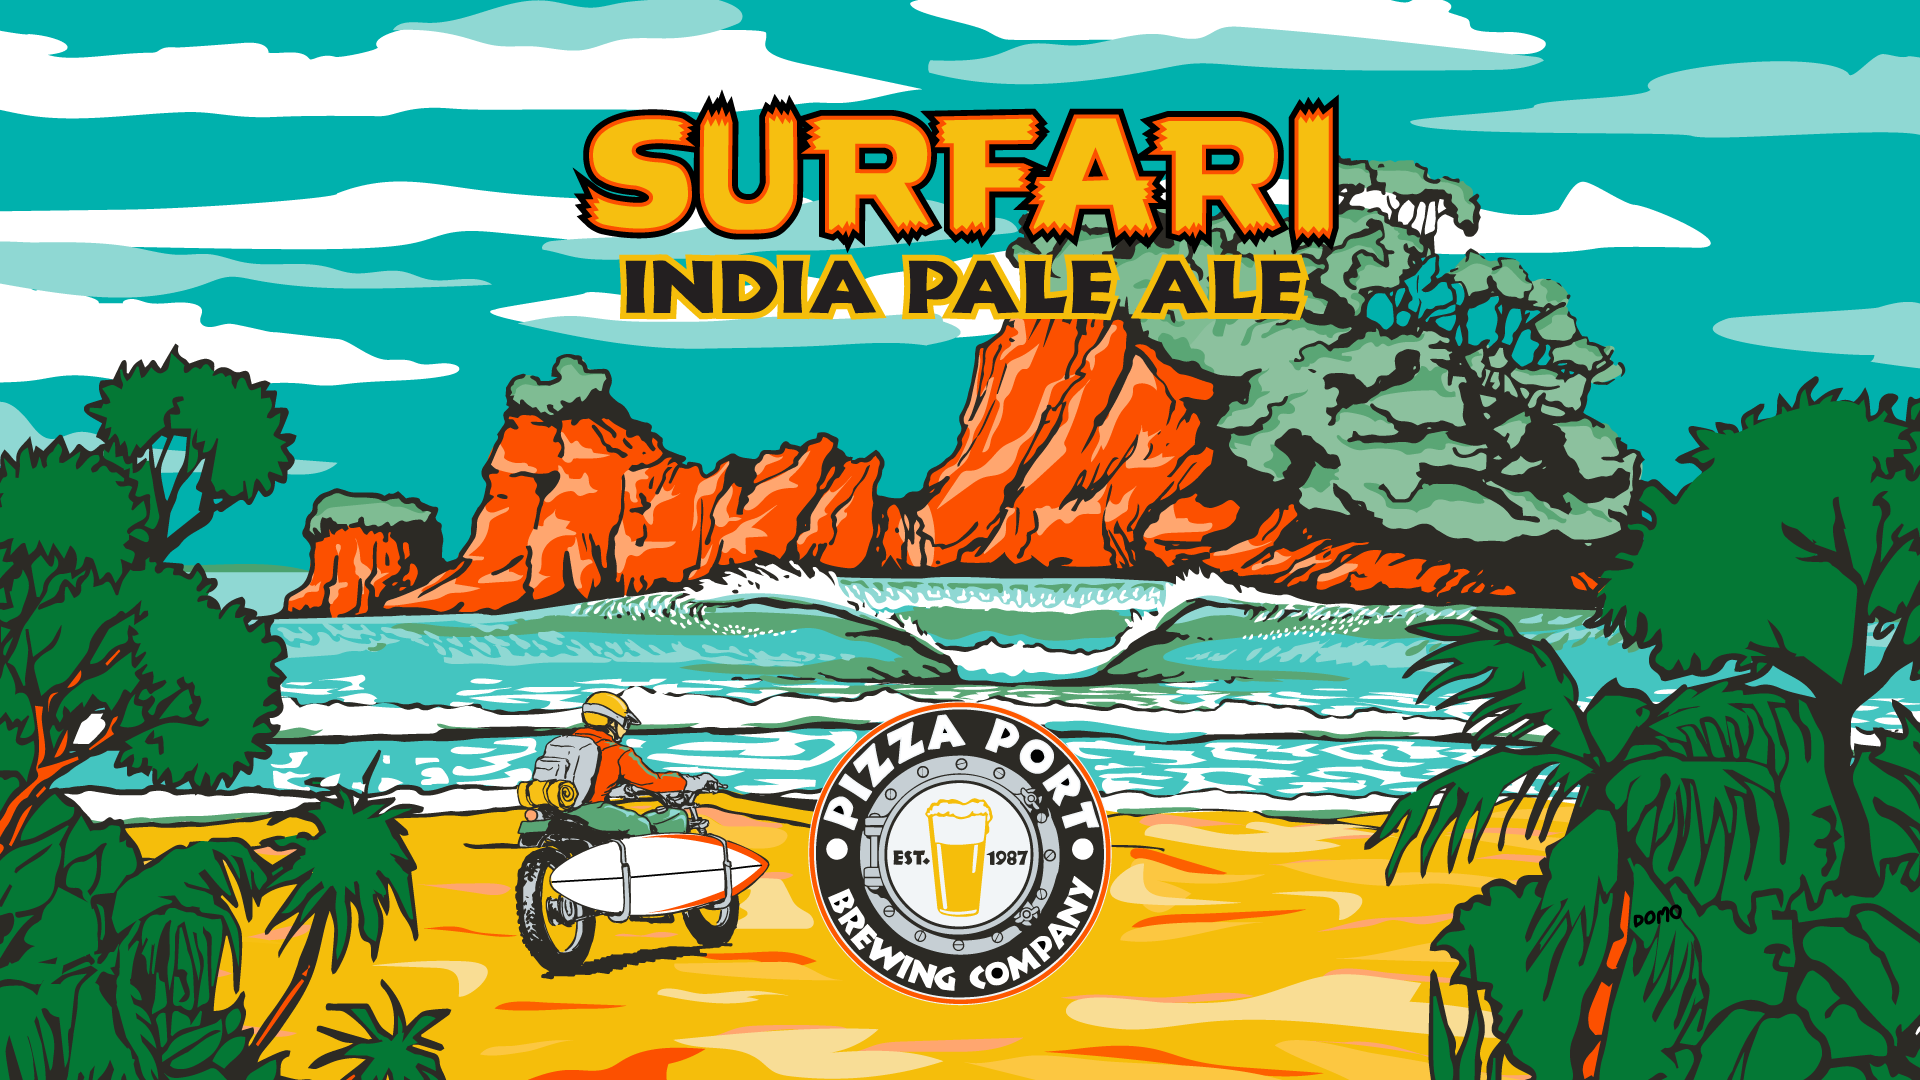 A Wild Surfari Adventure!